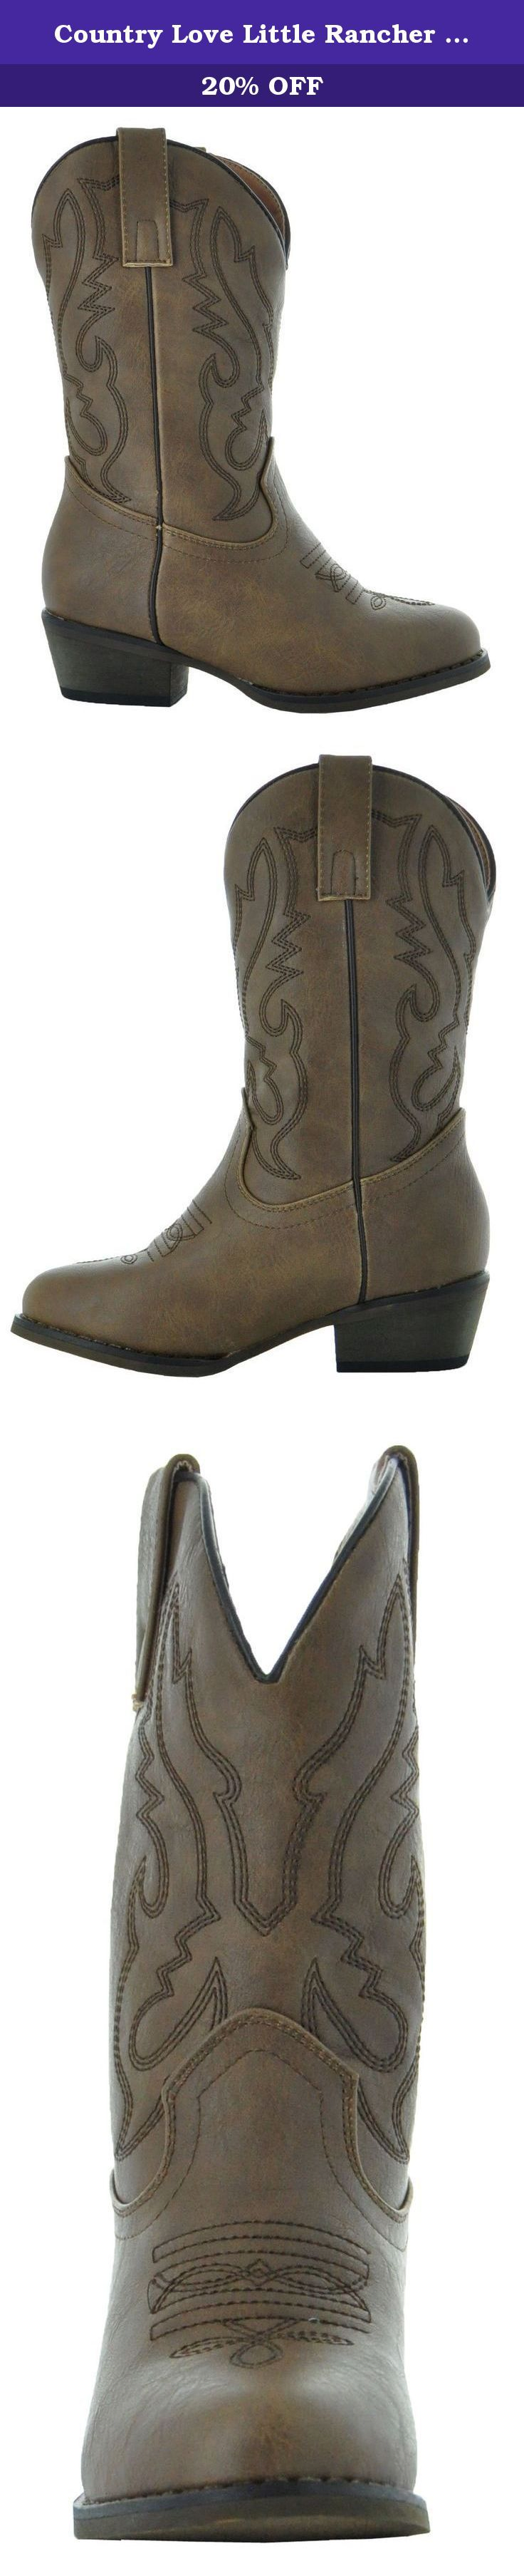 Country Love Little Rancher Kids Cowboy Boots K101-1001 (2, Brown). The perfect boots for your little cowgirl or cowboy in the making. The Country Love cowboy boots for kids offer the same classic western styling found in grown-up versions - but in sizes for your child. Made of durable synthetic leather with western stitching on the foot and shaft, these cowgirl boots for kids deliver total comfort and style. They have an easy 1-1/2 inch heel height, round toe shape, comfortable lining...